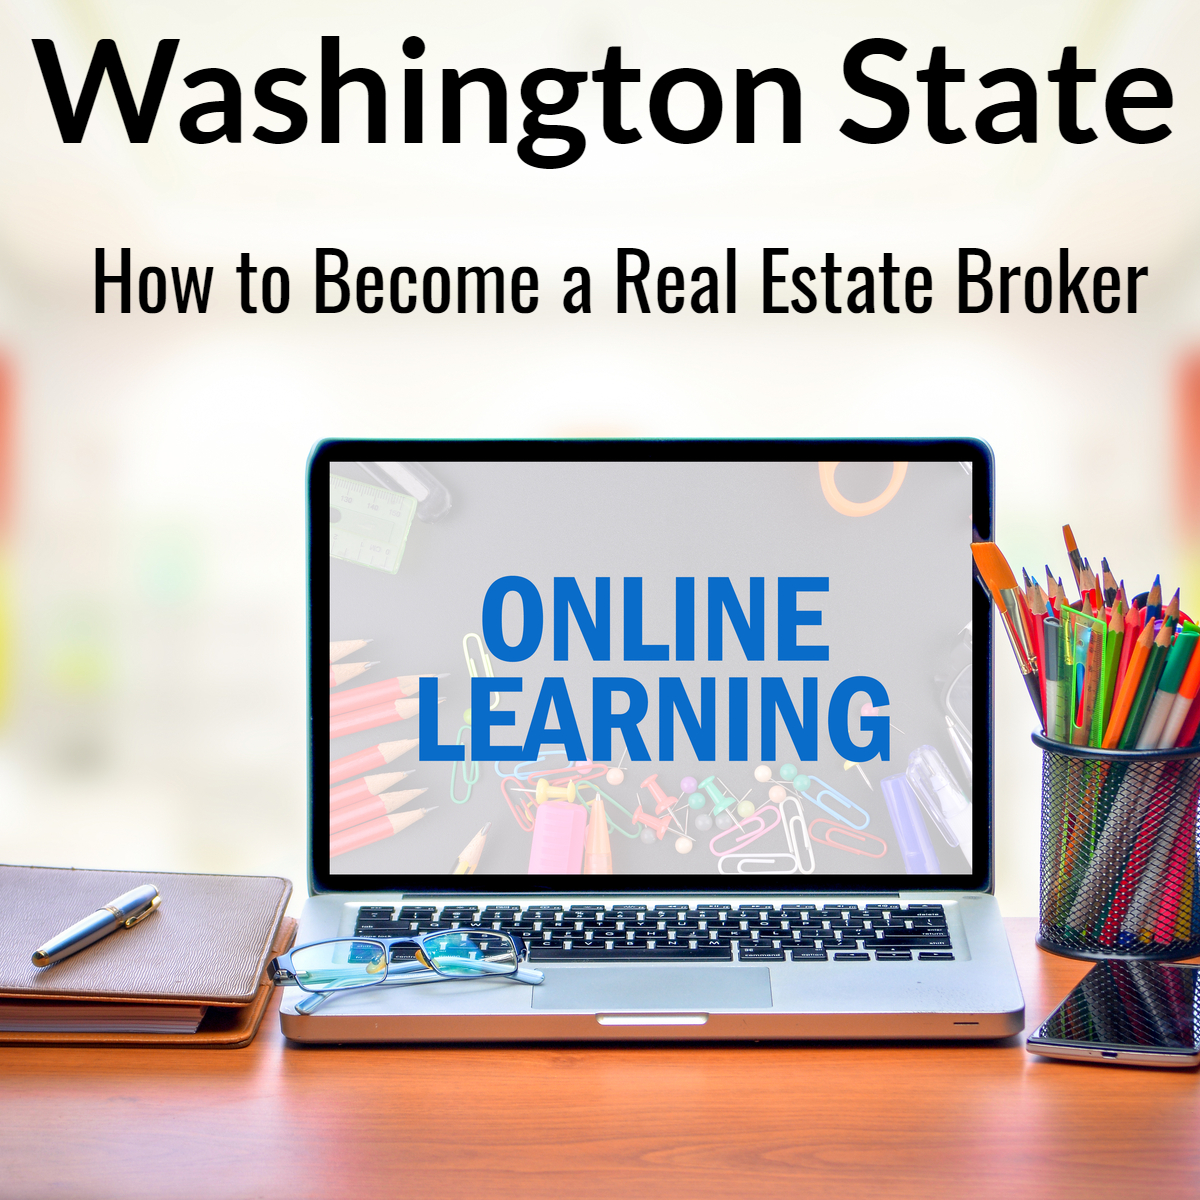 How to Become a Real Estate Broker in Wa State